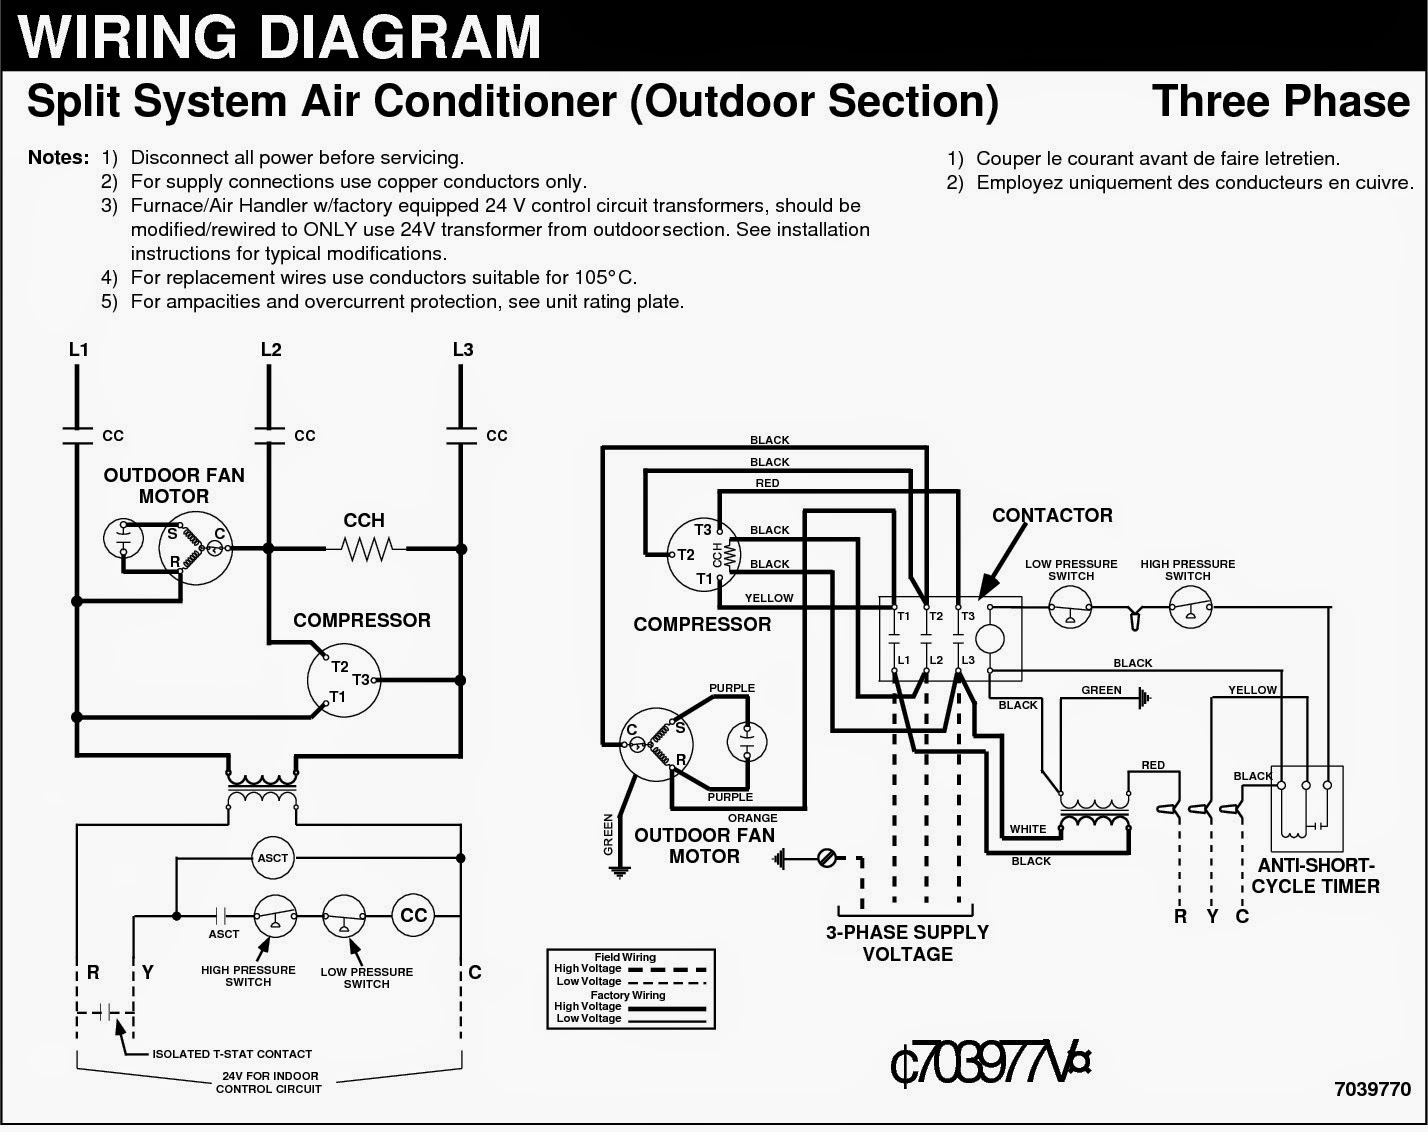 ac wiring schematic wiring diagrams schematics ac regulator diagram electrical wiring diagrams for air conditioning systems part two ac wiring board auto ac wiring diagram